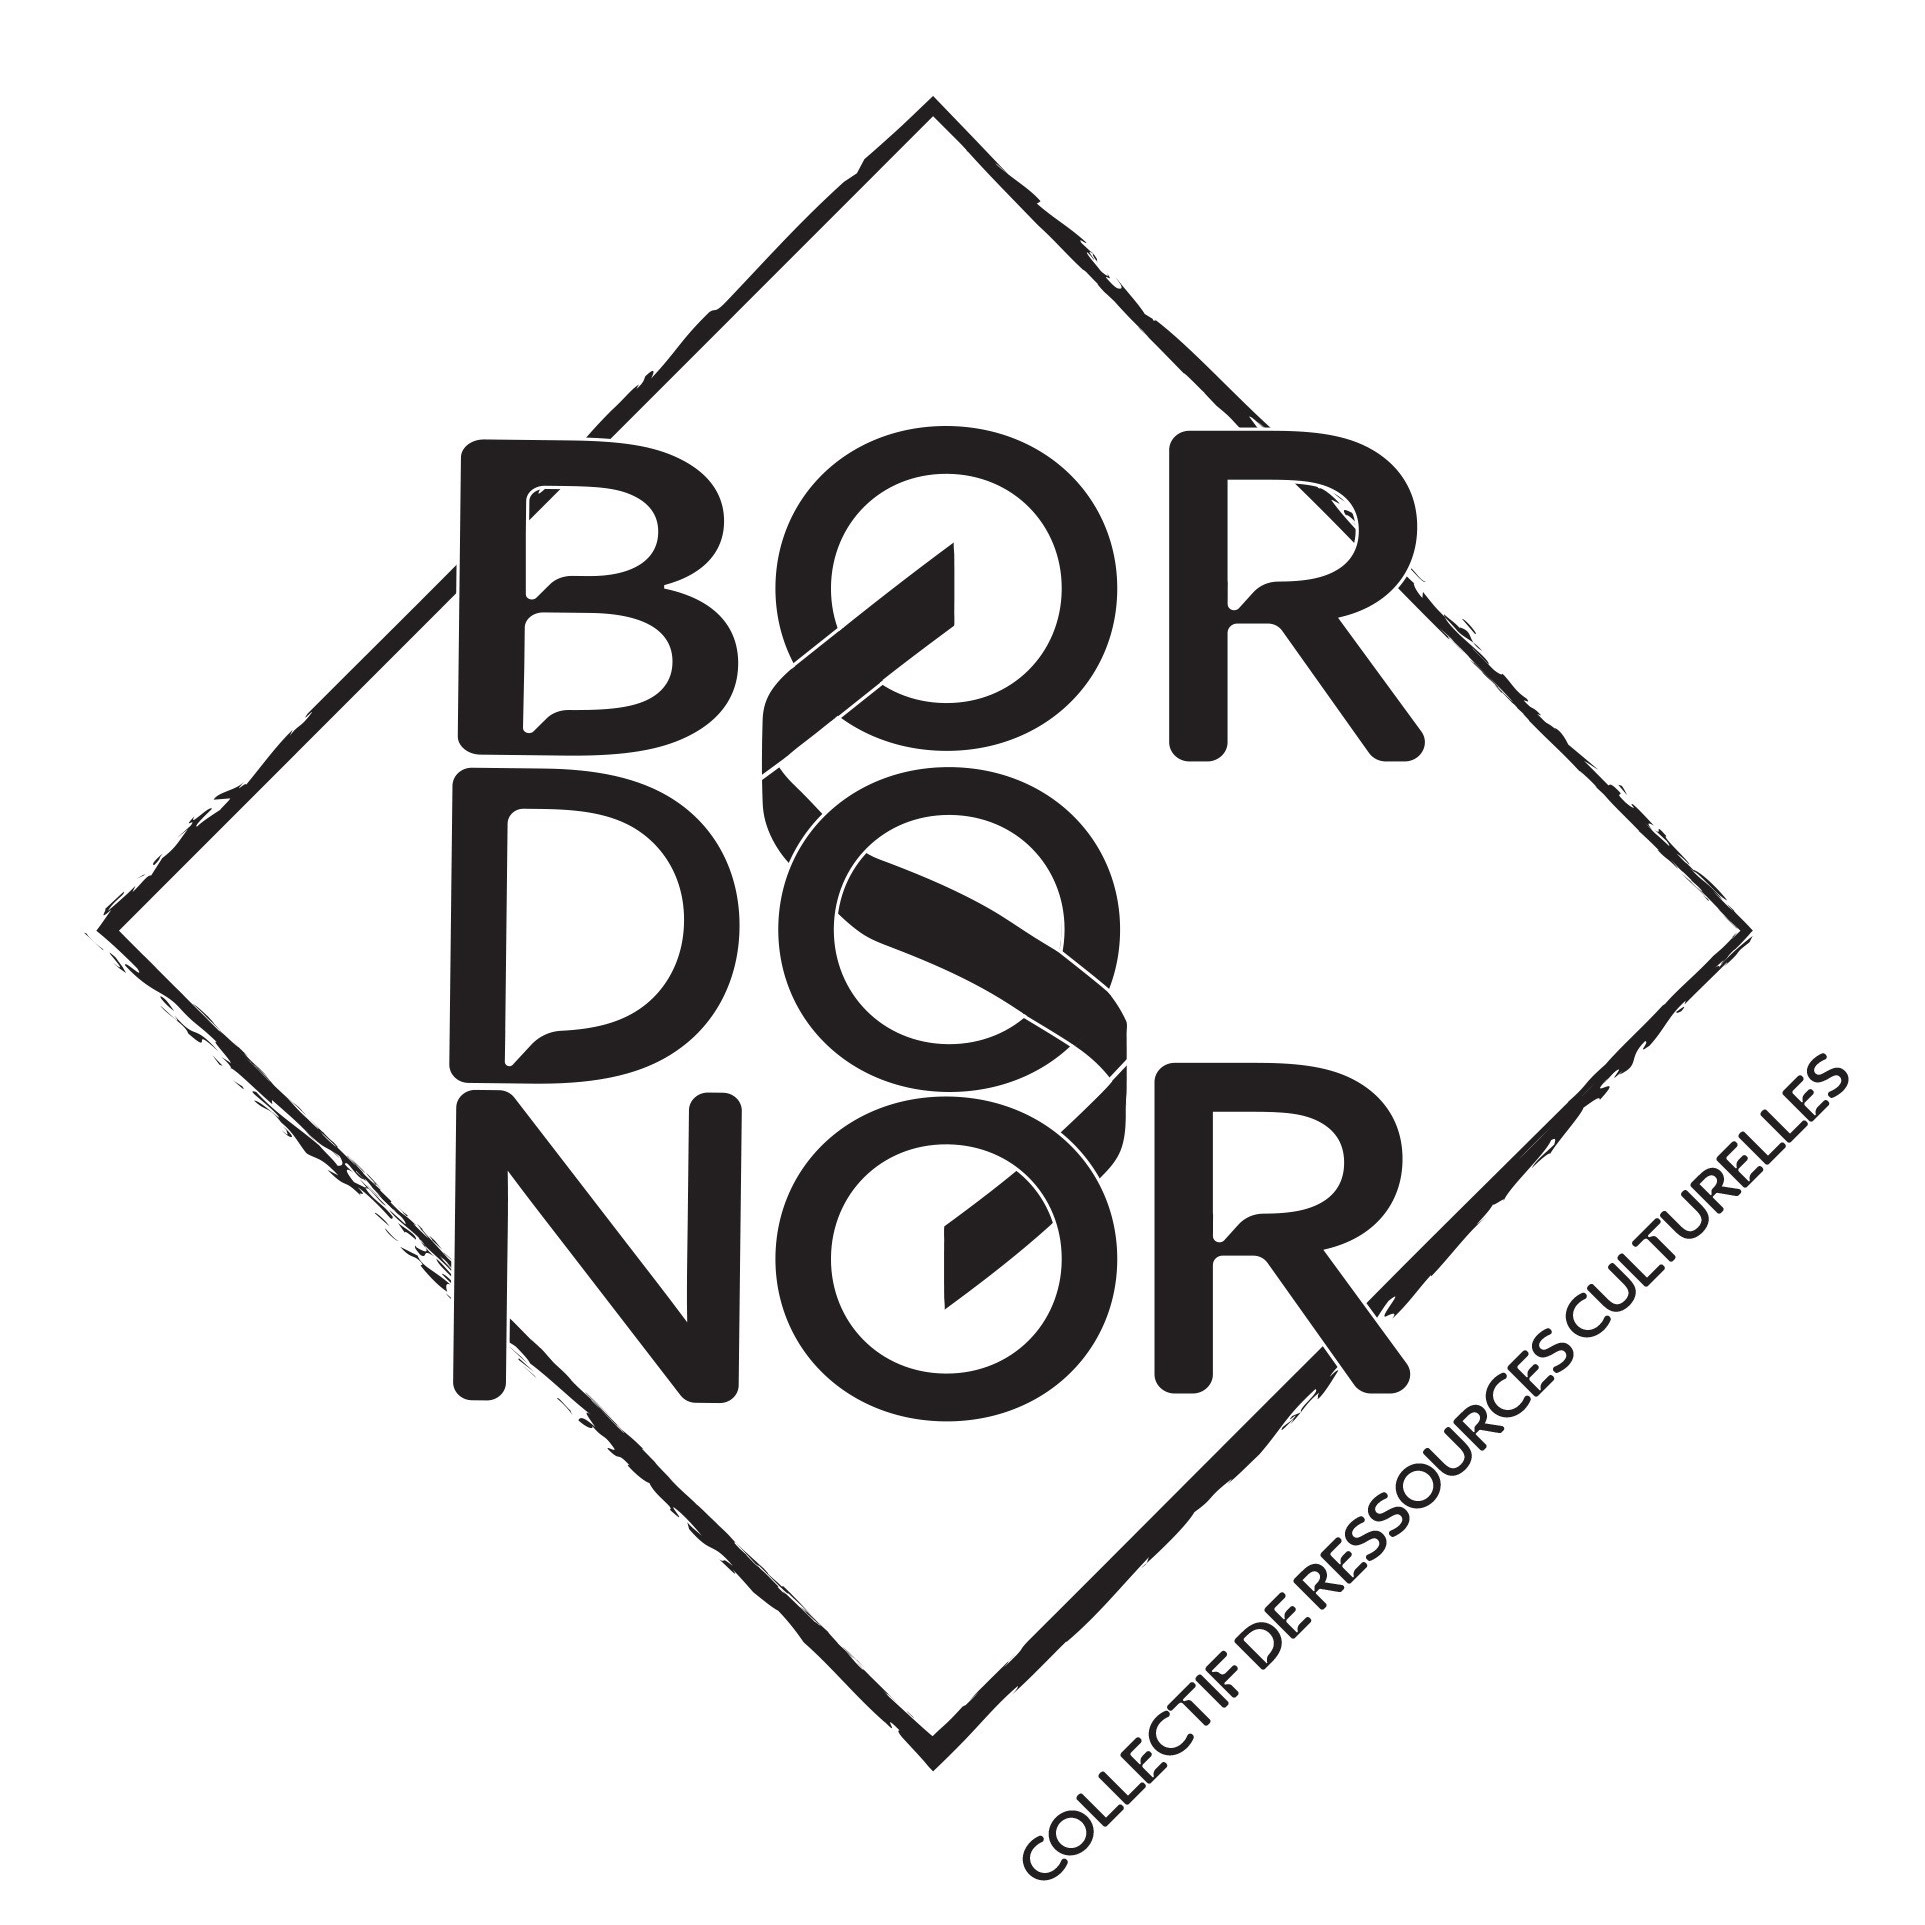 logo collectif bordonor